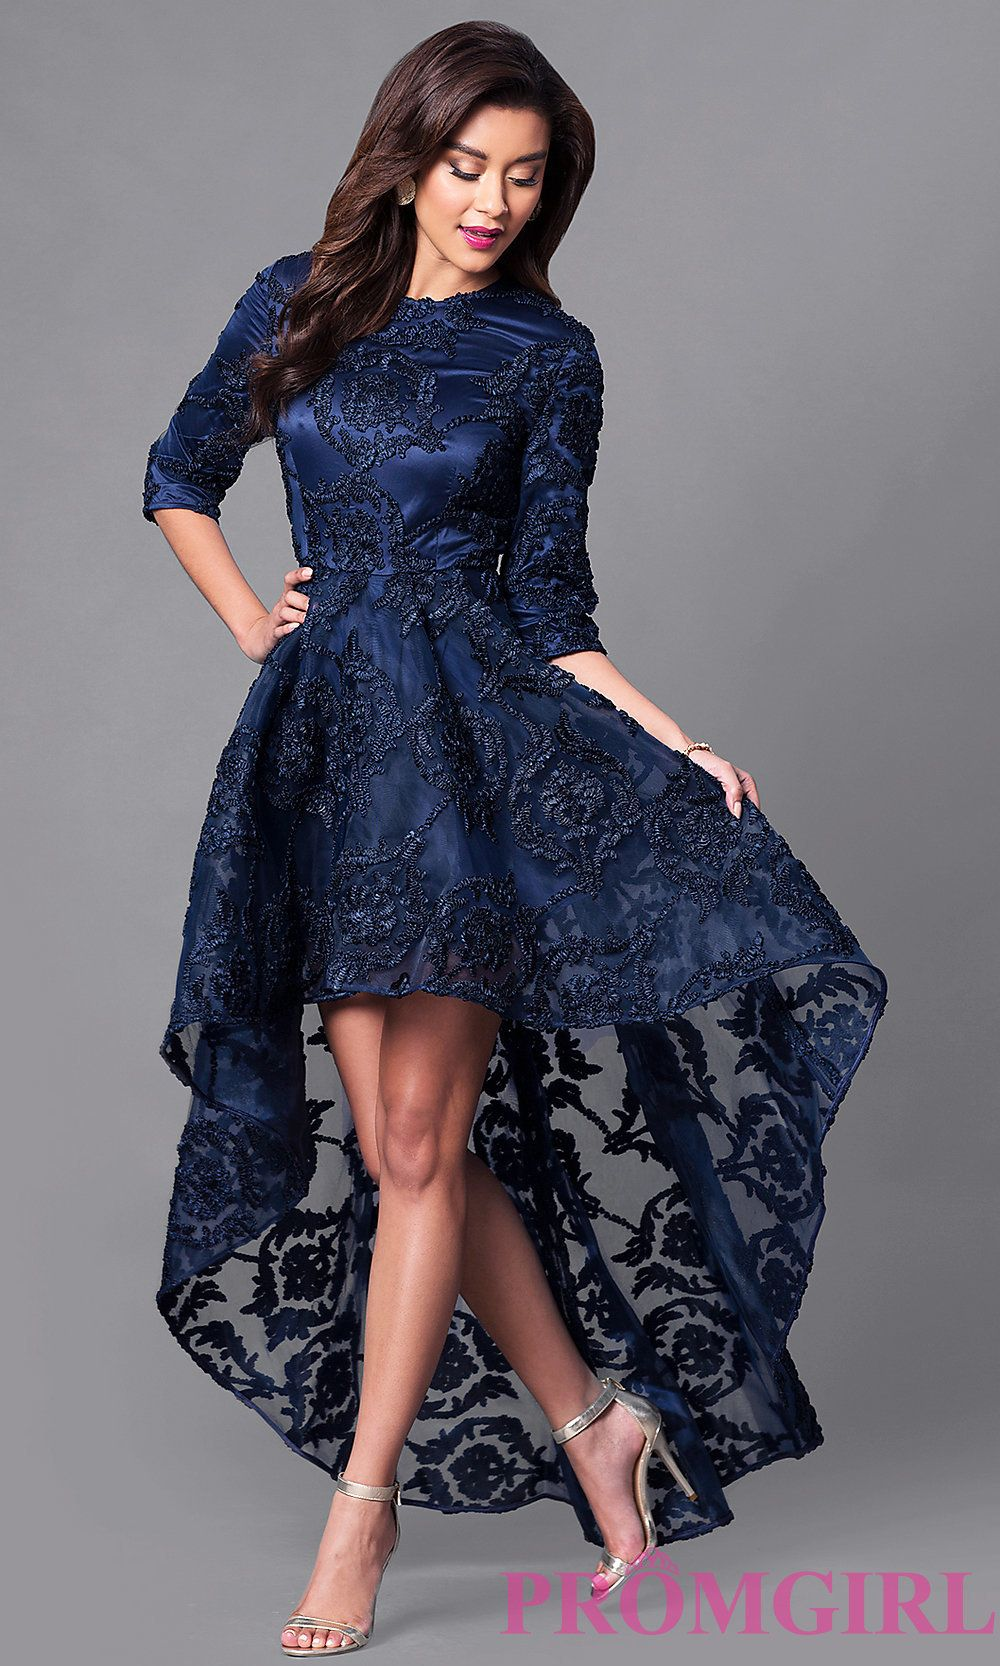 I like style cqdw from promgirl do you like style